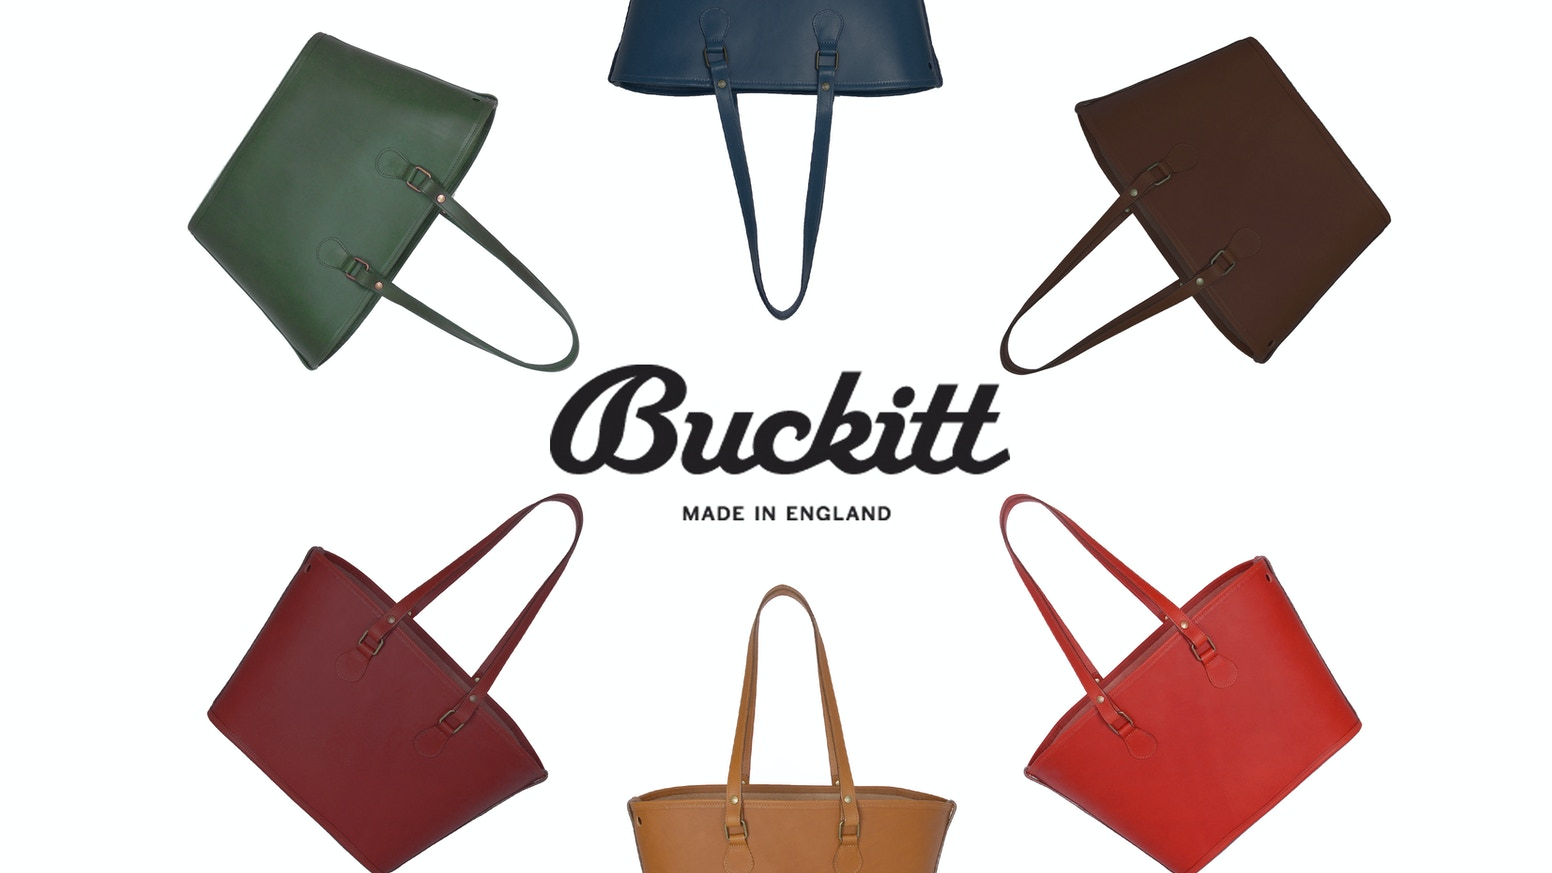 A simple, high-quality, British-made leather bag designed to be as practical and hard-wearing as it is smart and elegant.